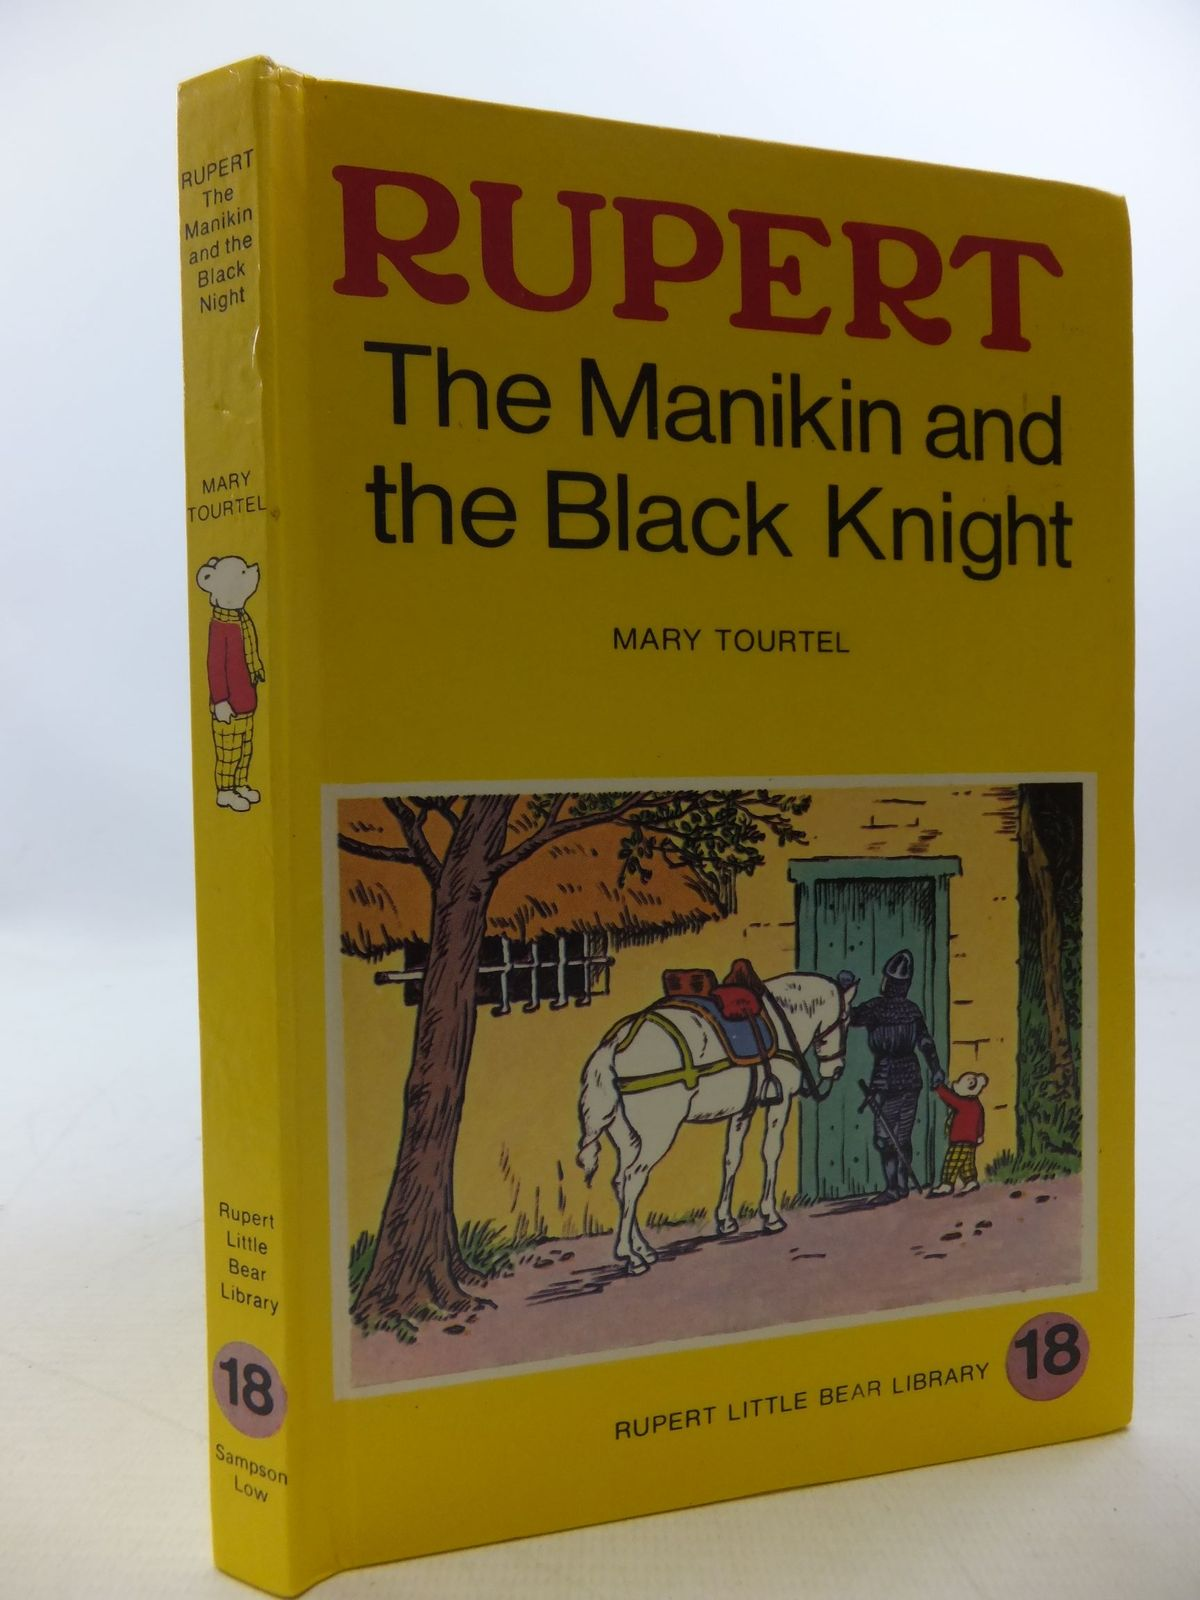 Photo of RUPERT, THE MANIKIN AND THE BLACK KNIGHT - RUPERT LITTLE BEAR LIBRARY No. 18 (WOOLWORTH)- Stock Number: 2112754